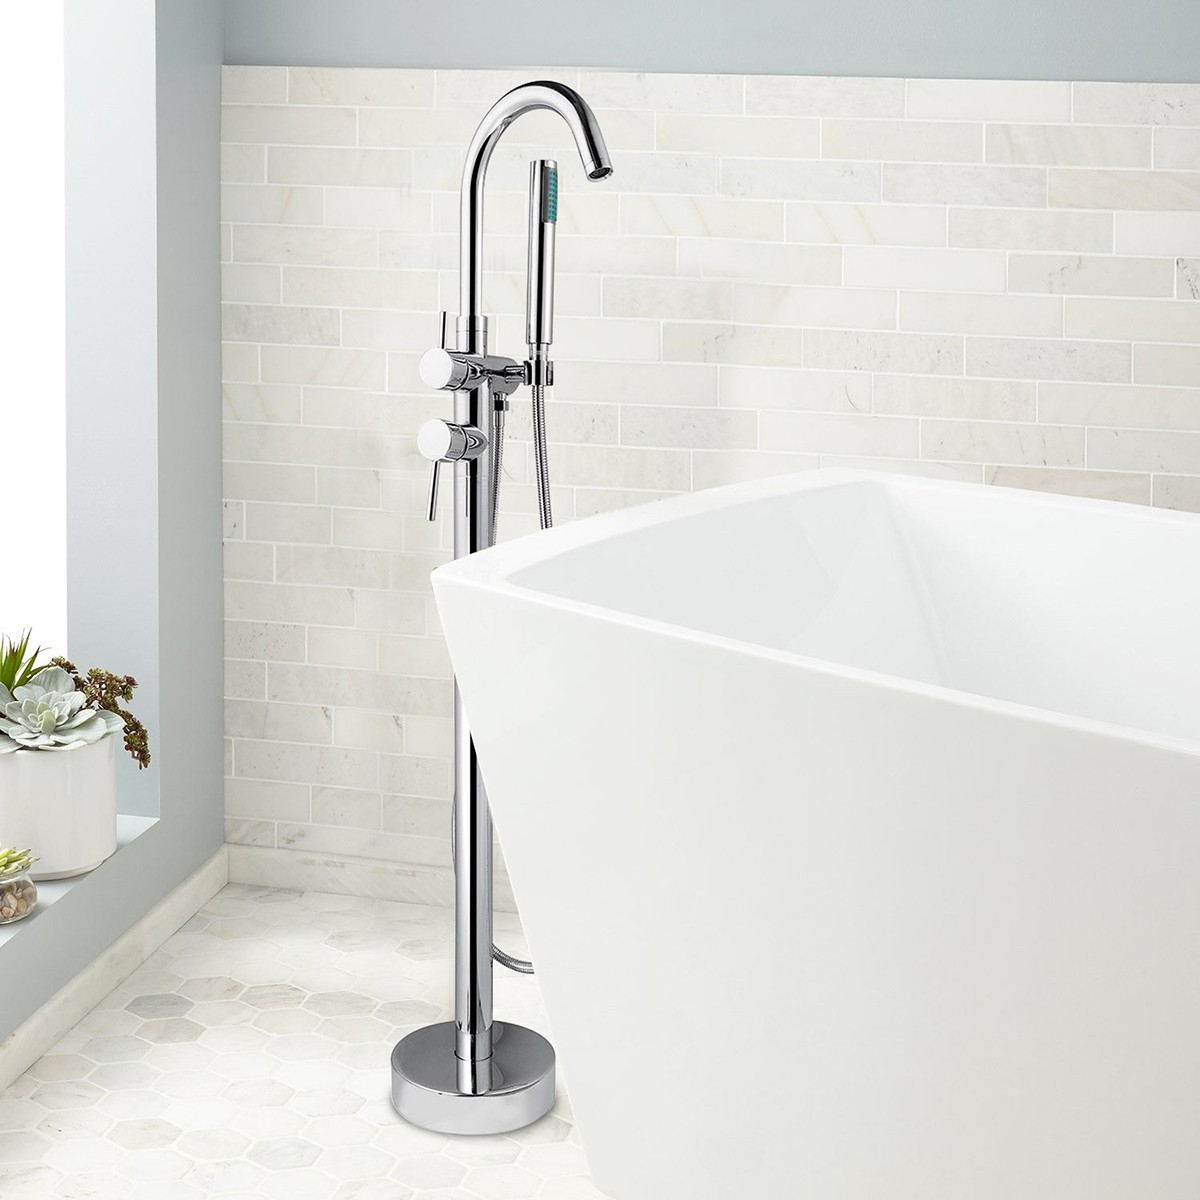 Modern Style Freestanding Tub Faucet - Brass with Chrome Finish (Y003)